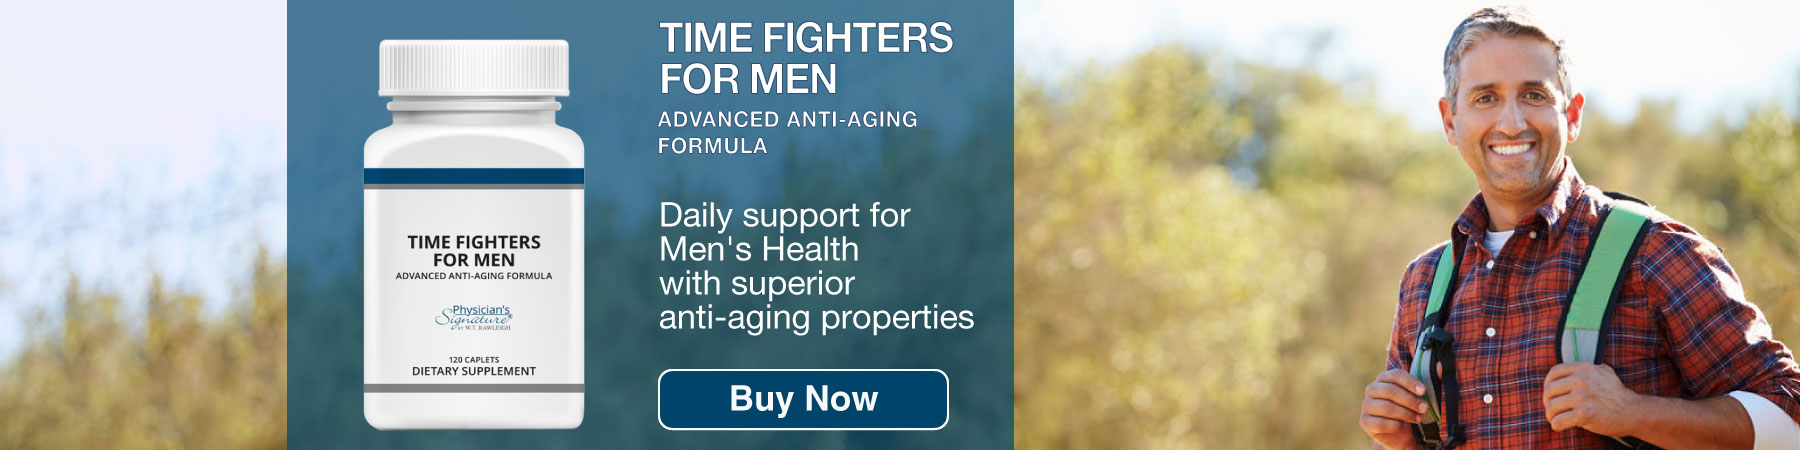 Timefighters For Men